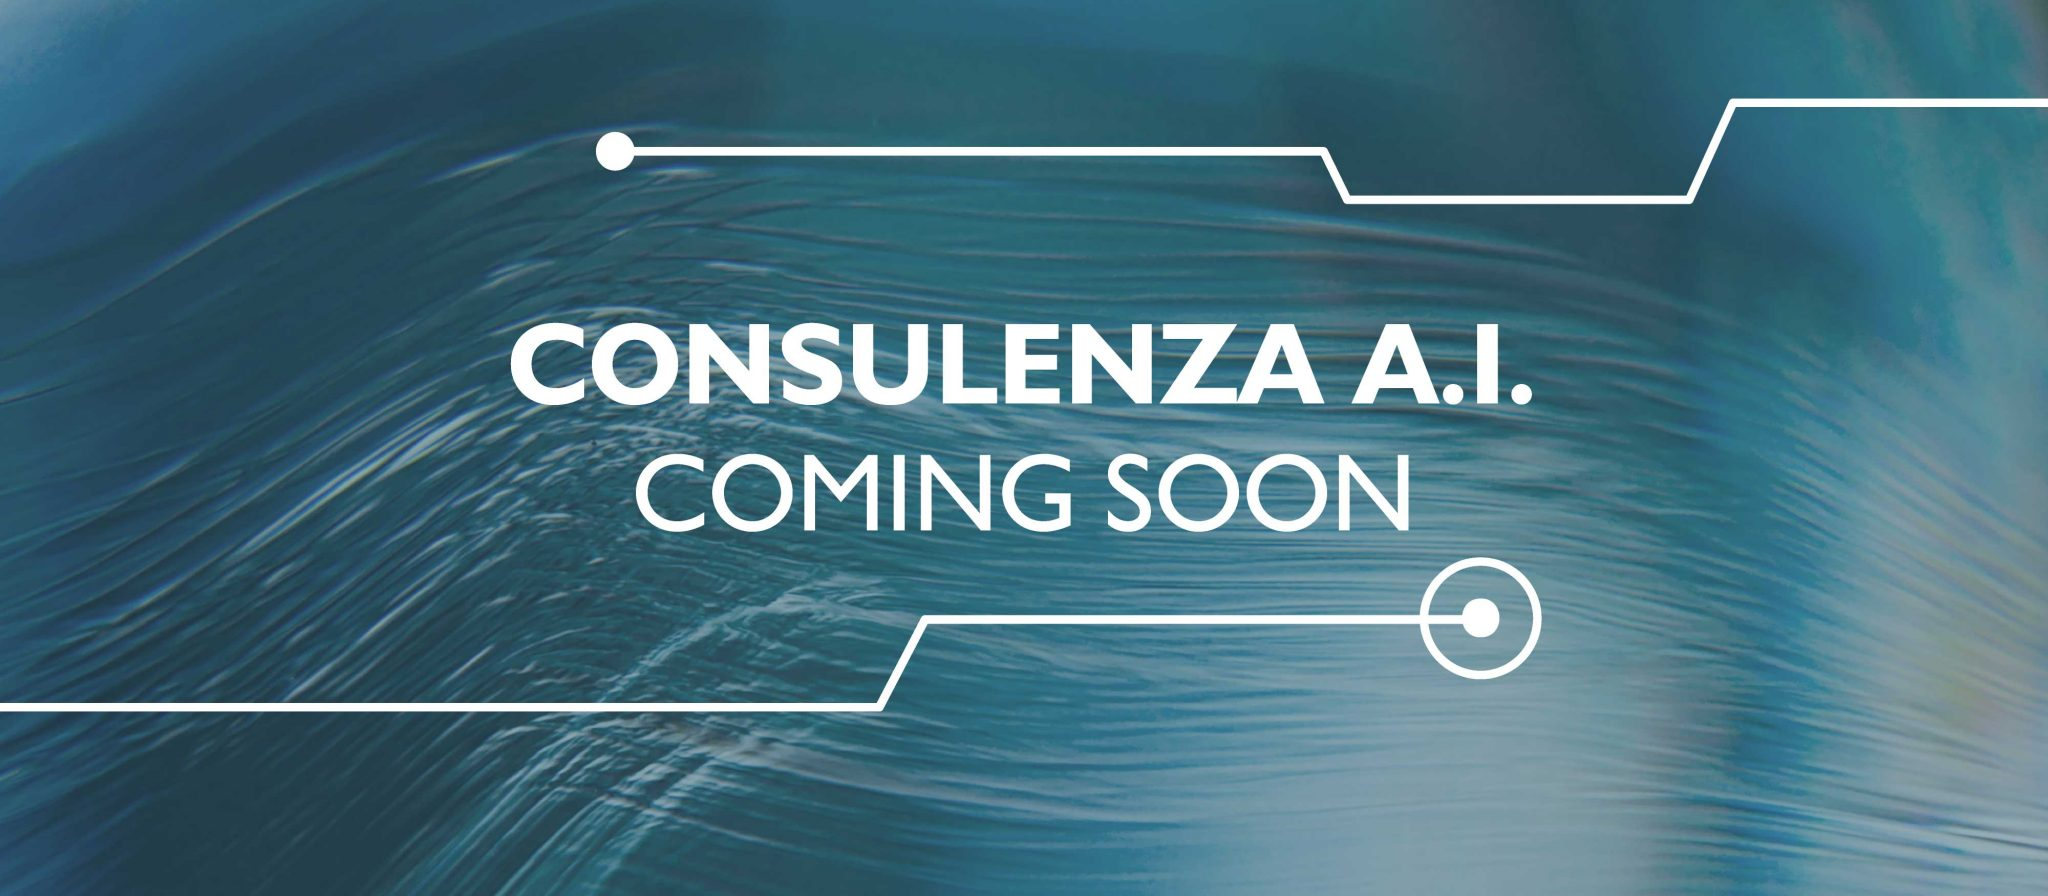 consulenza-coming-soon_banner_desktopb